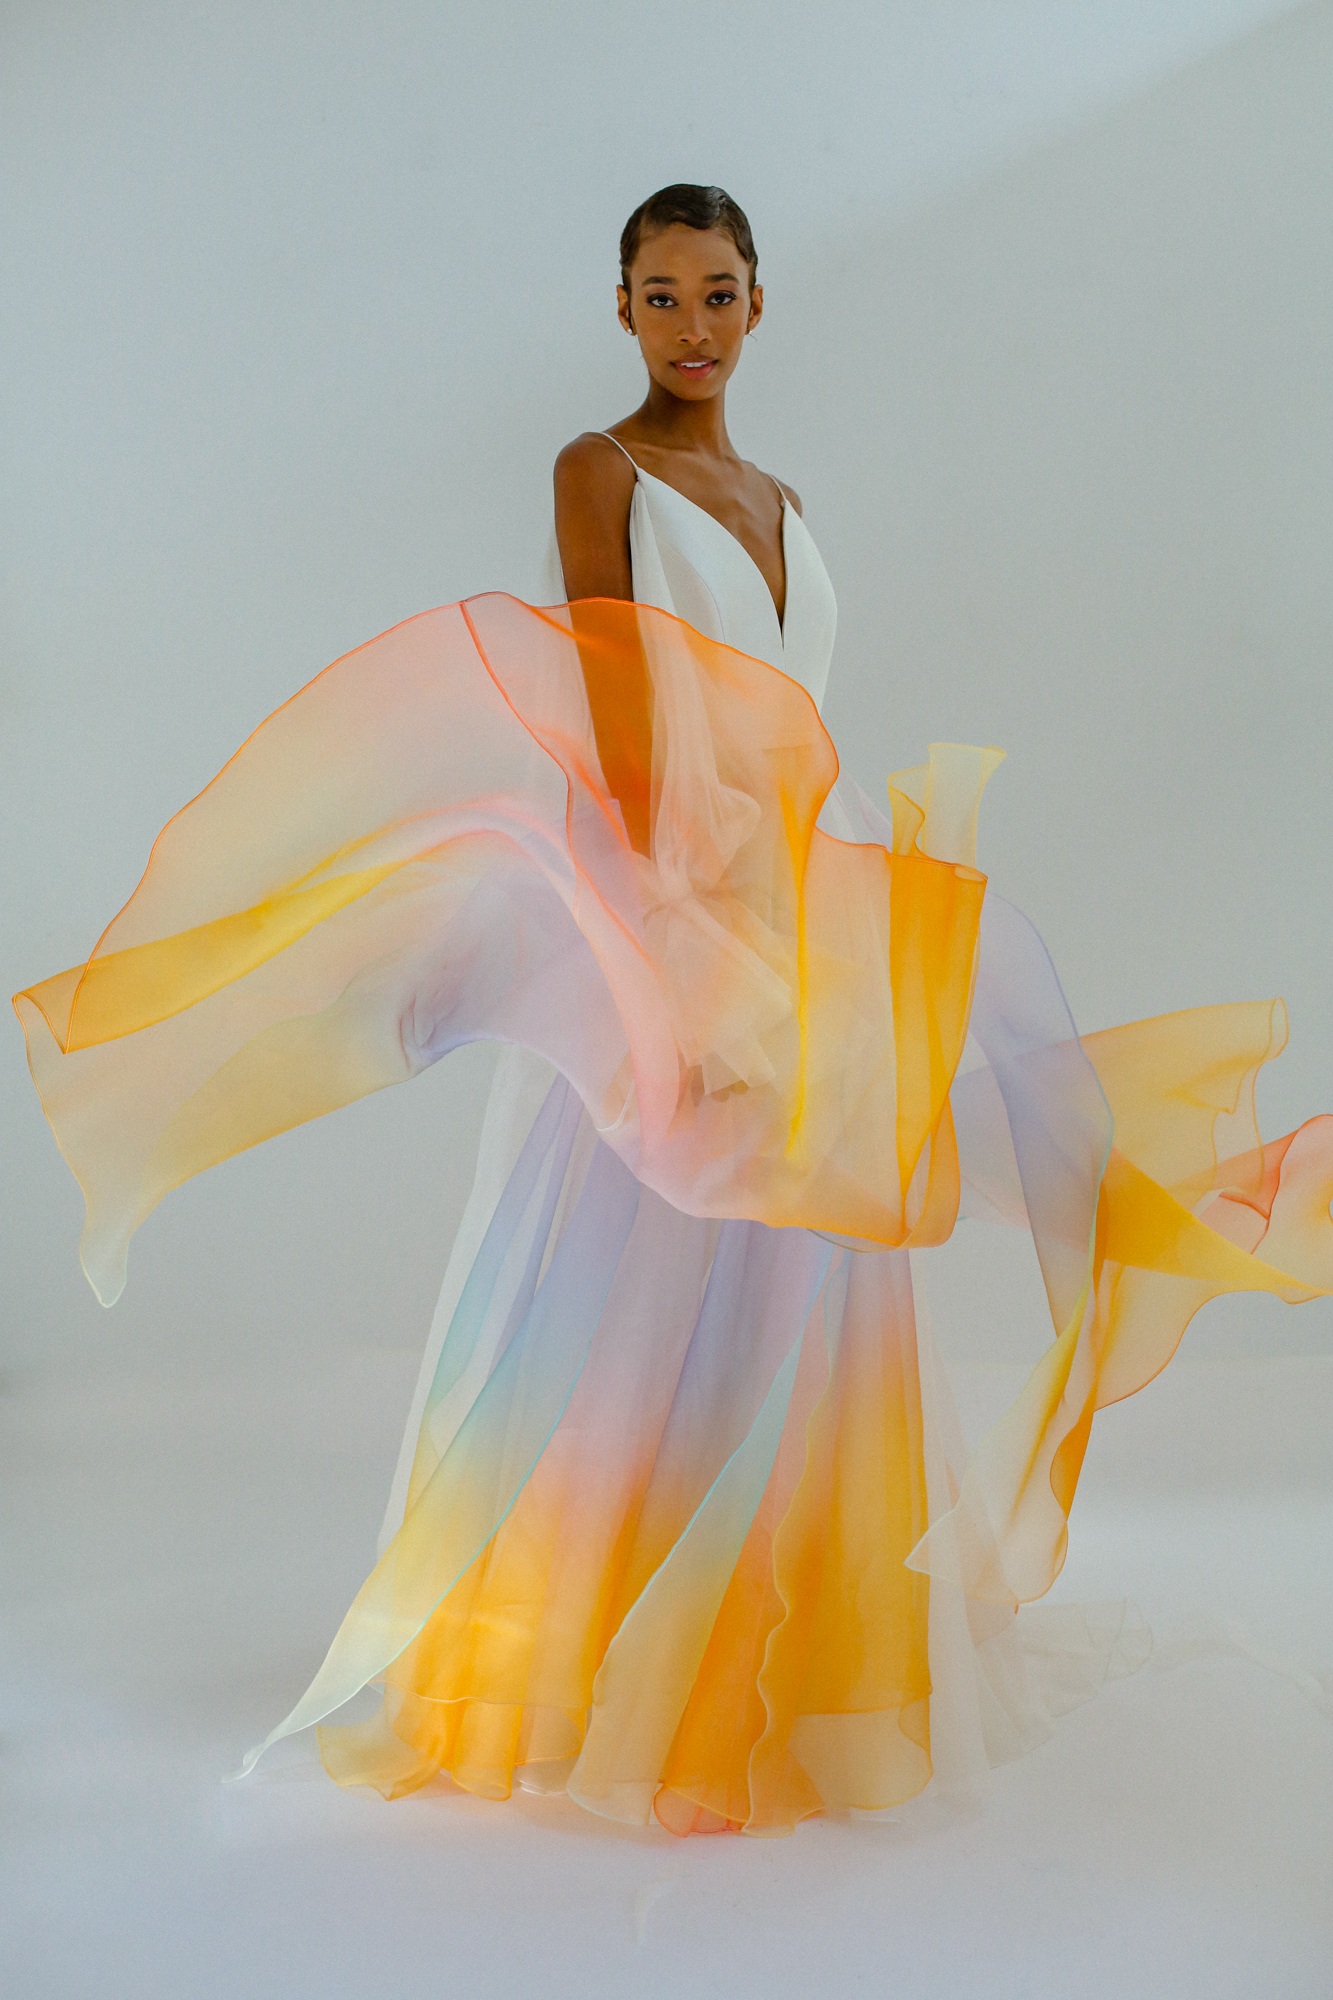 Bridal gown hand painted in hologram effect